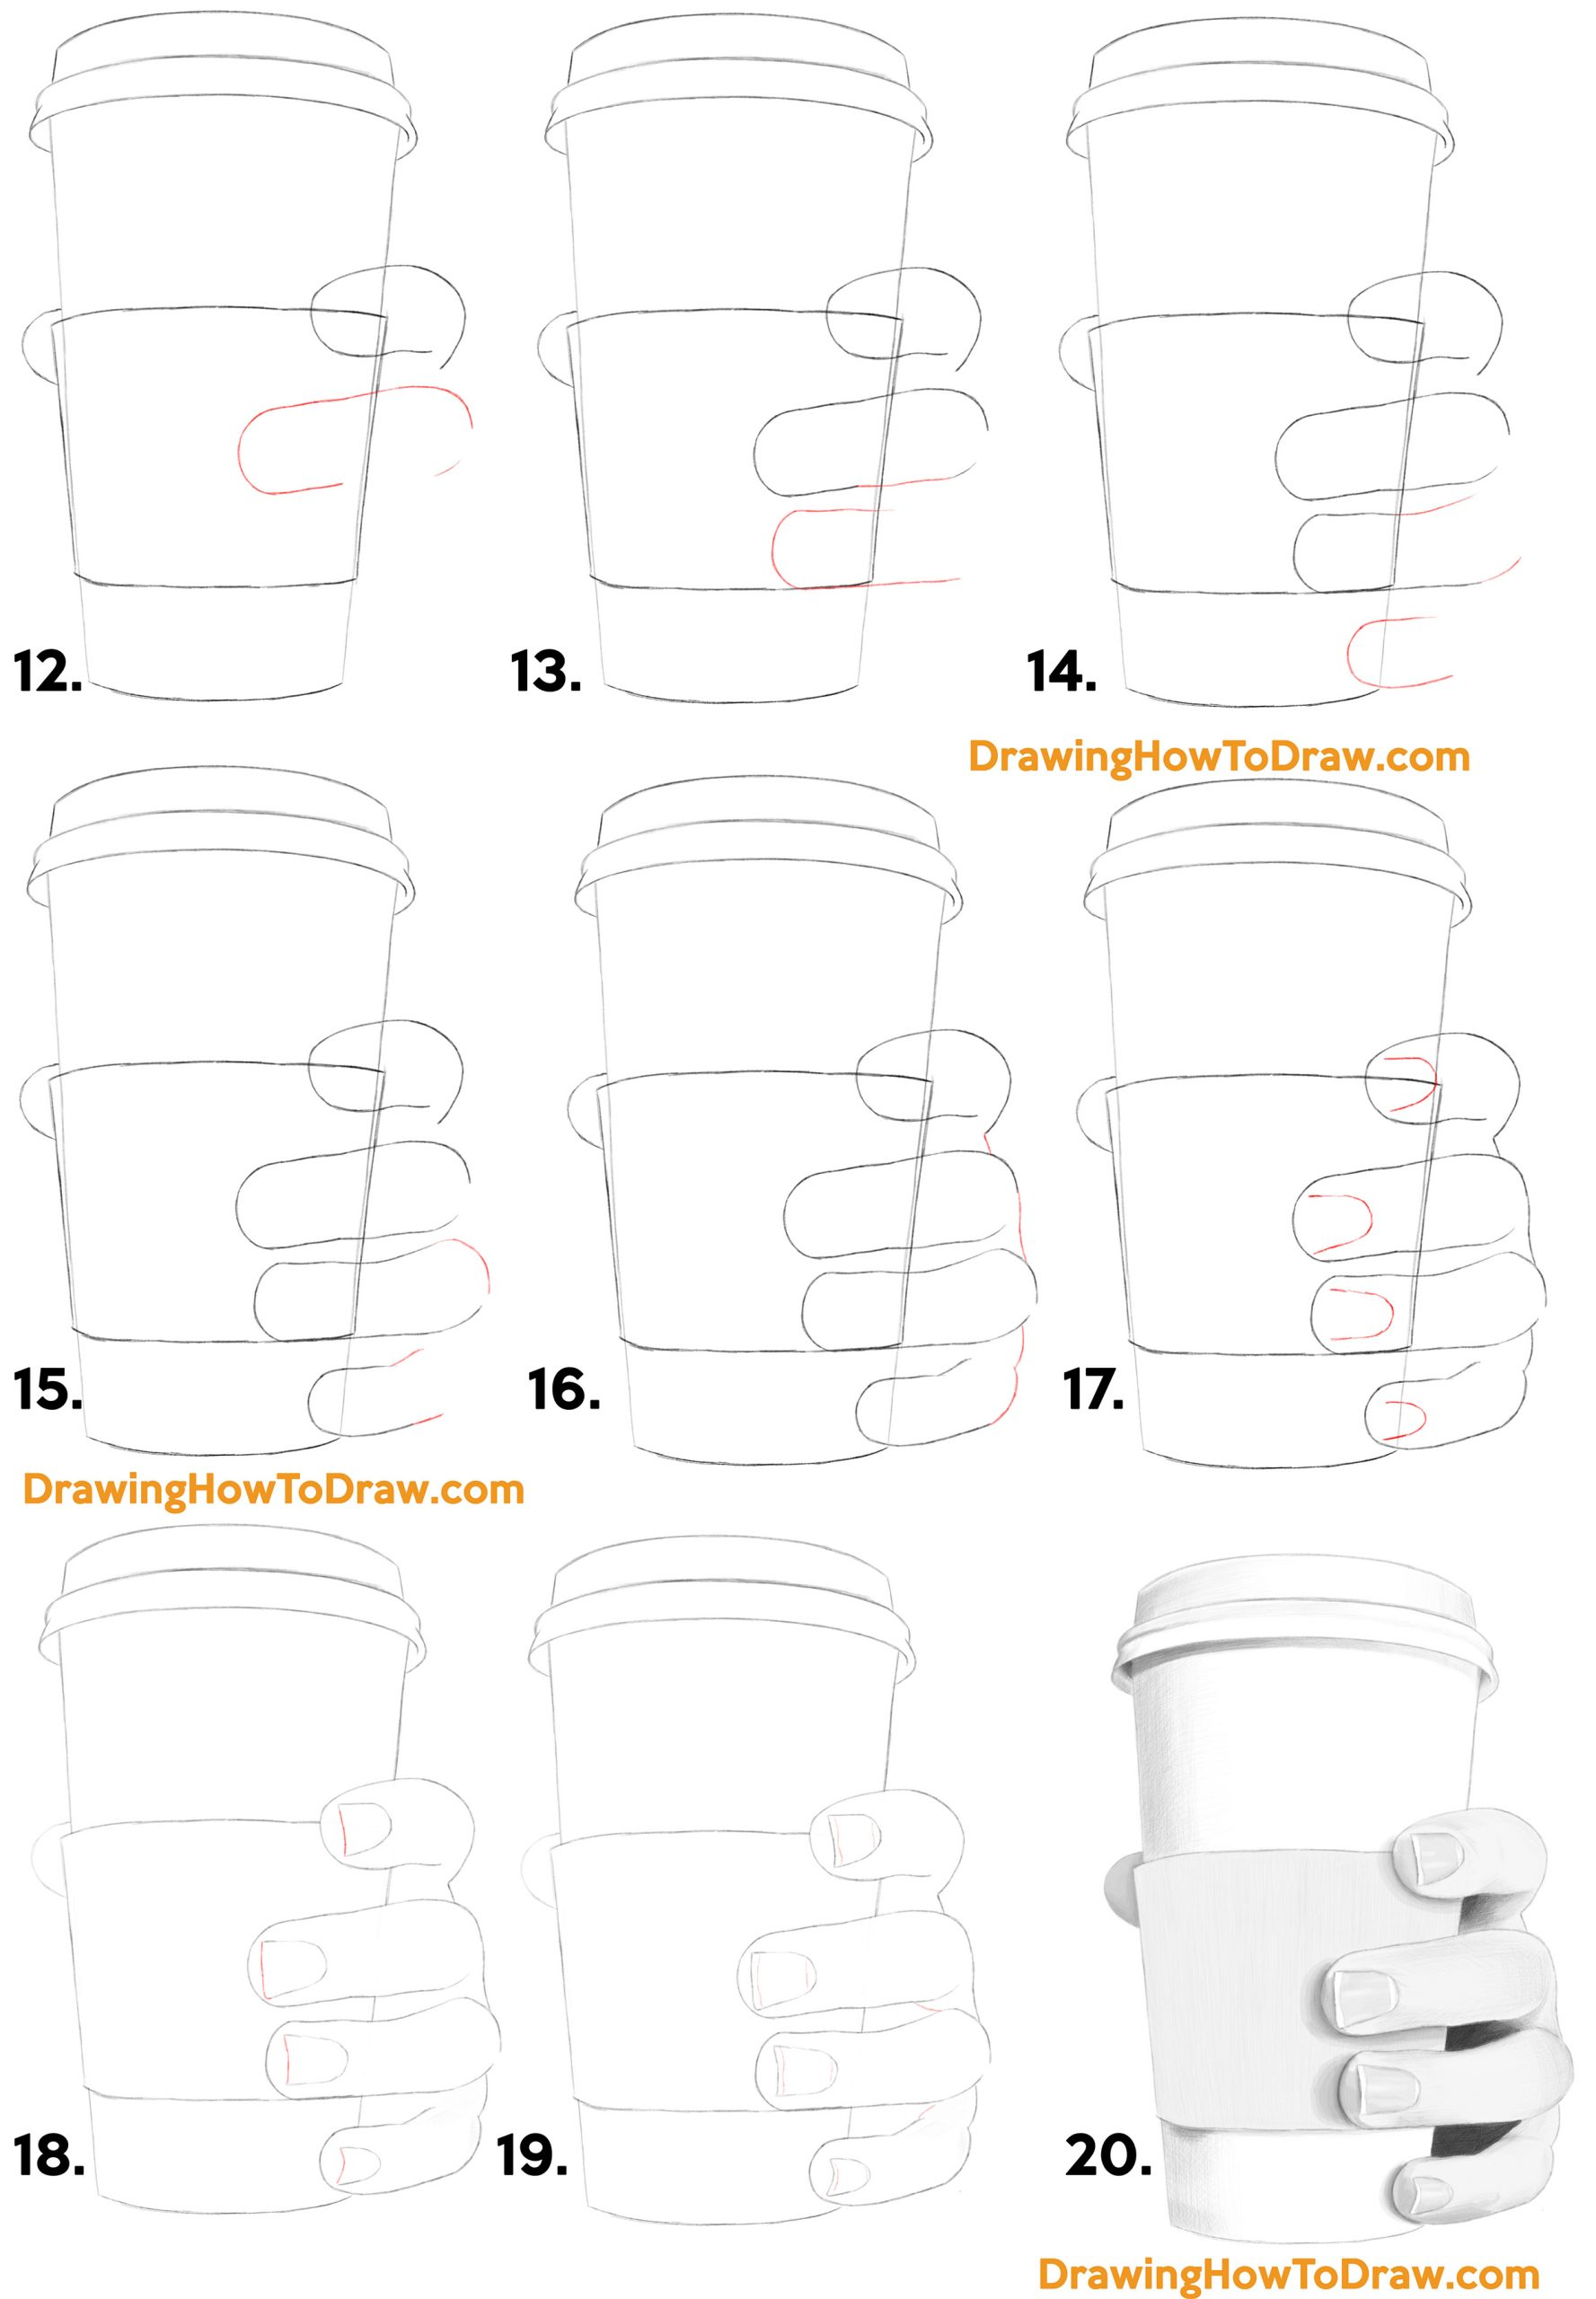 How to Draw a Realistic Hand Holding a Disposable Coffee Cup - Step by Step Drawing Tutorial